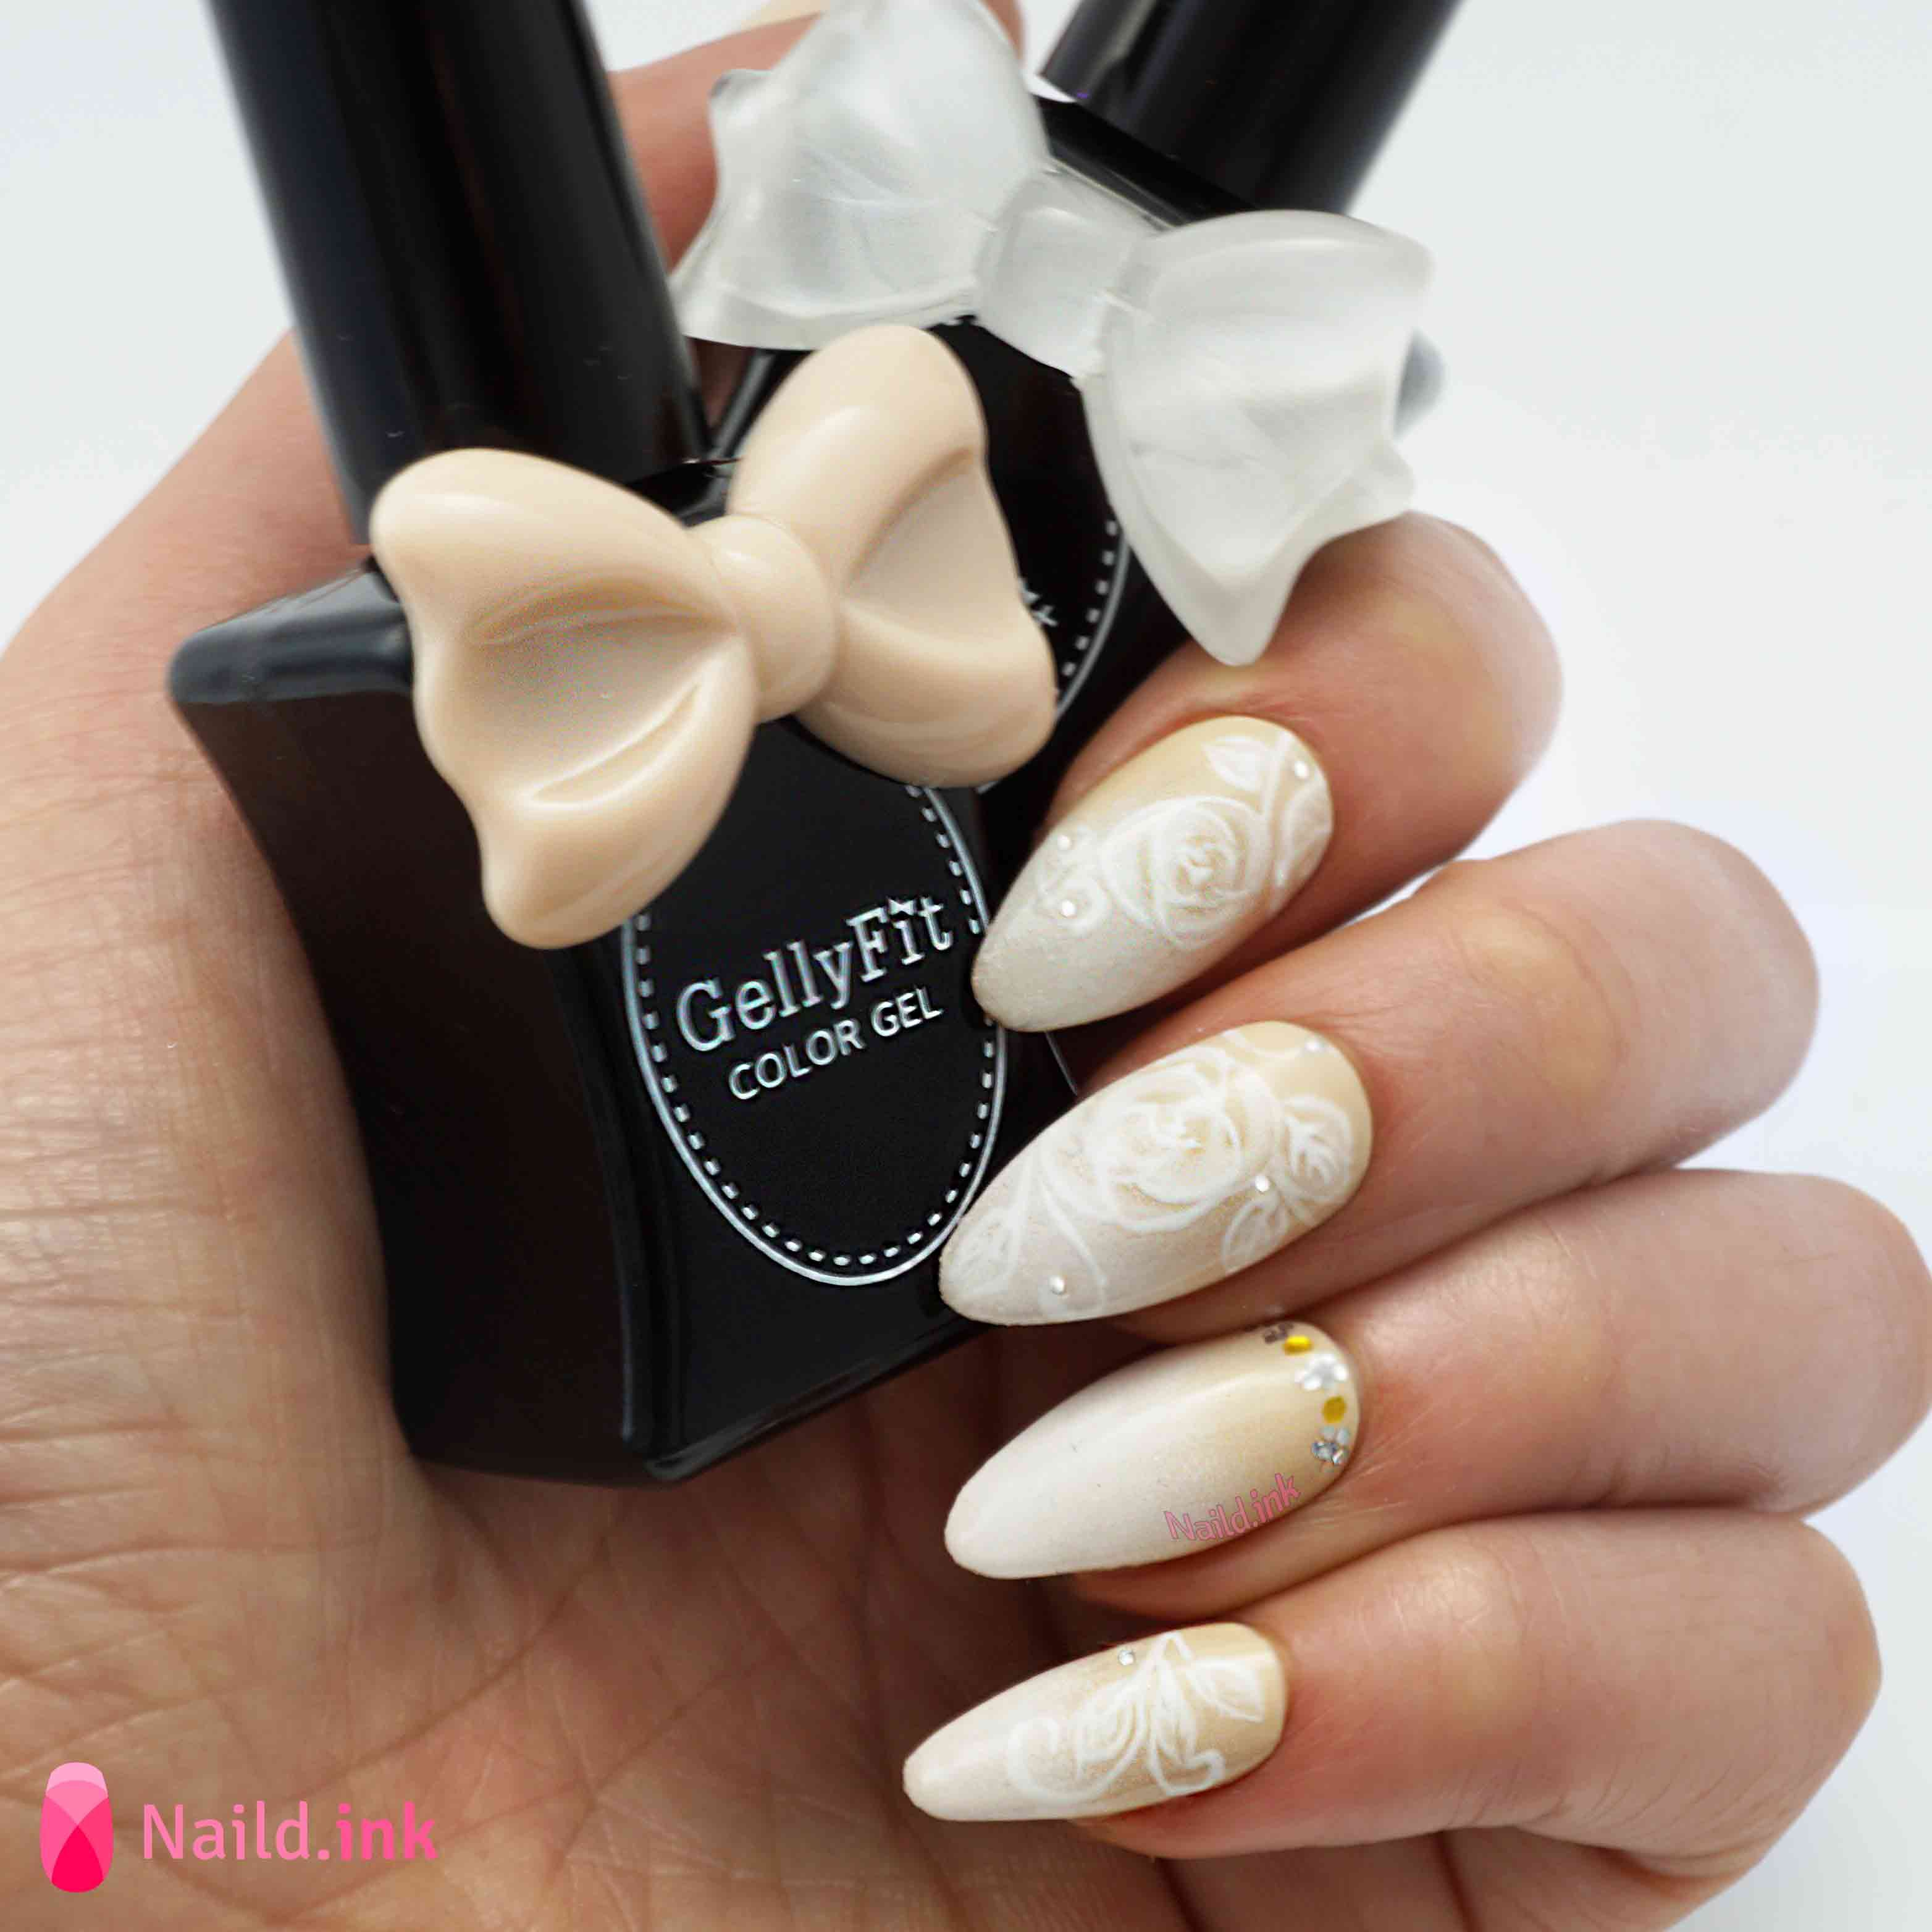 Pin By Naildk On Gellyfit Sa Designs Pinterest Trendy Nail